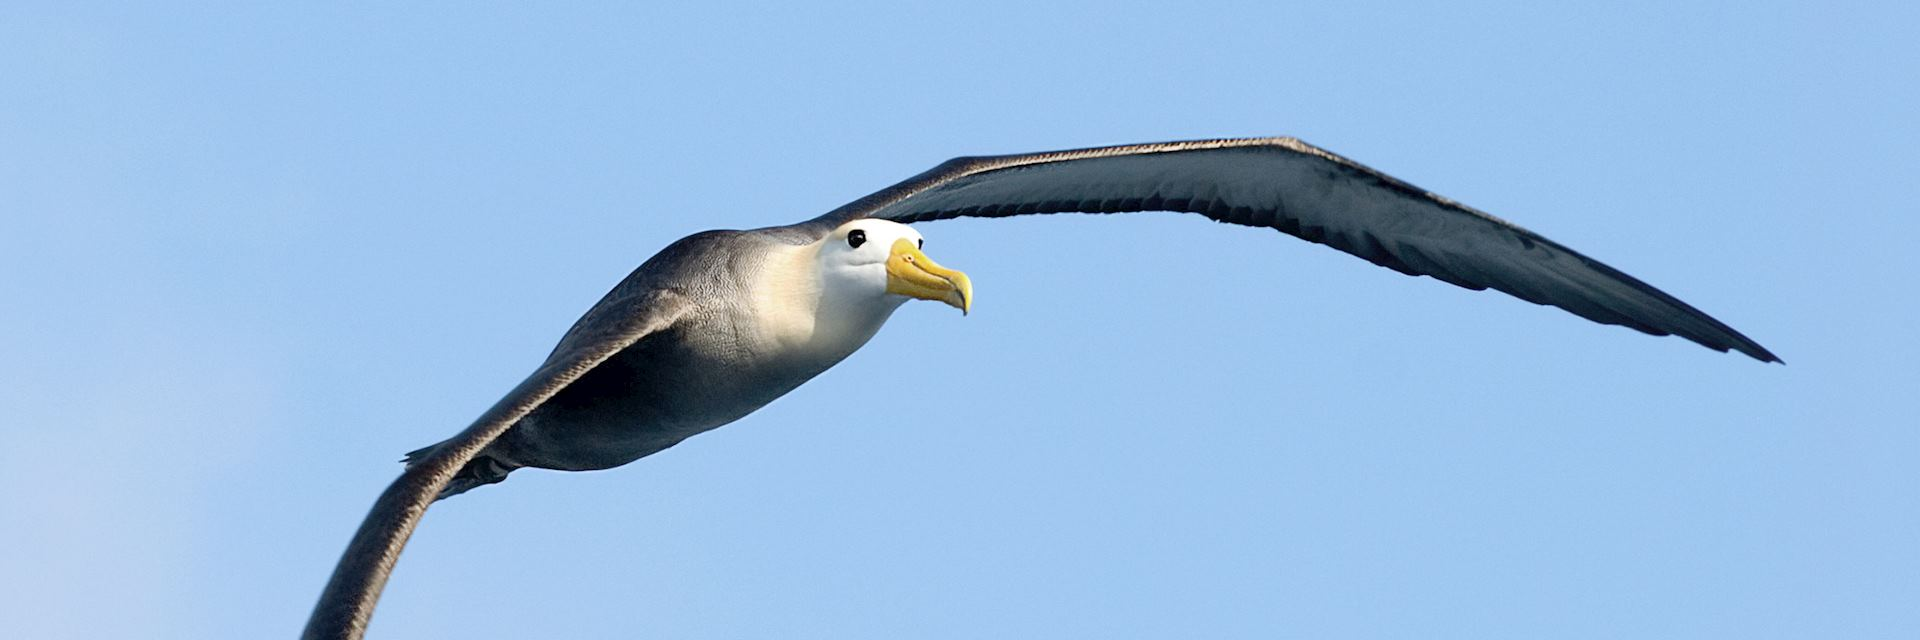 Albatros, the Galapagos islands